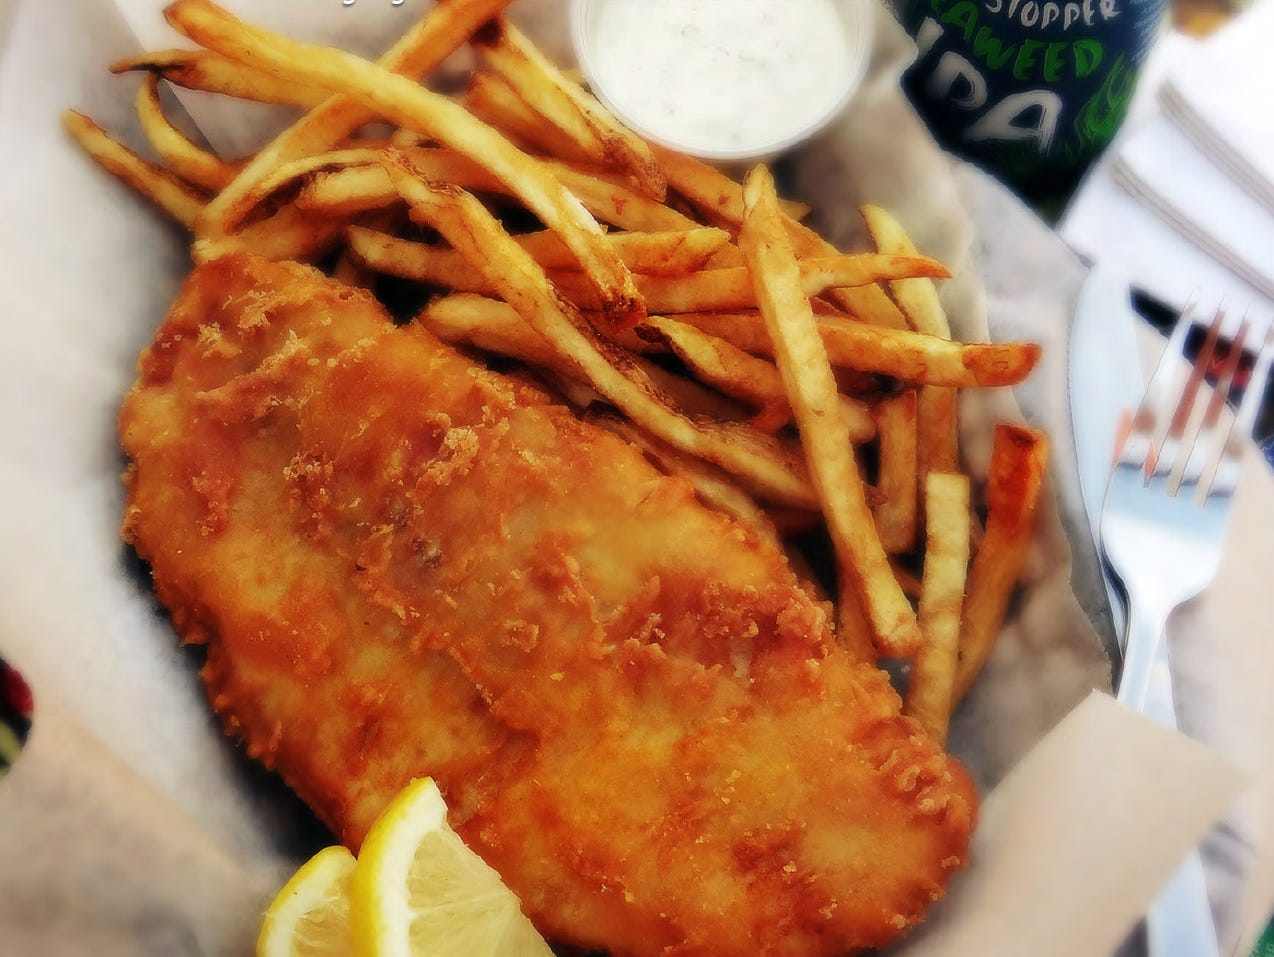 This Fish n' Fries are available at  The Circle located at 5 East Walnut St.